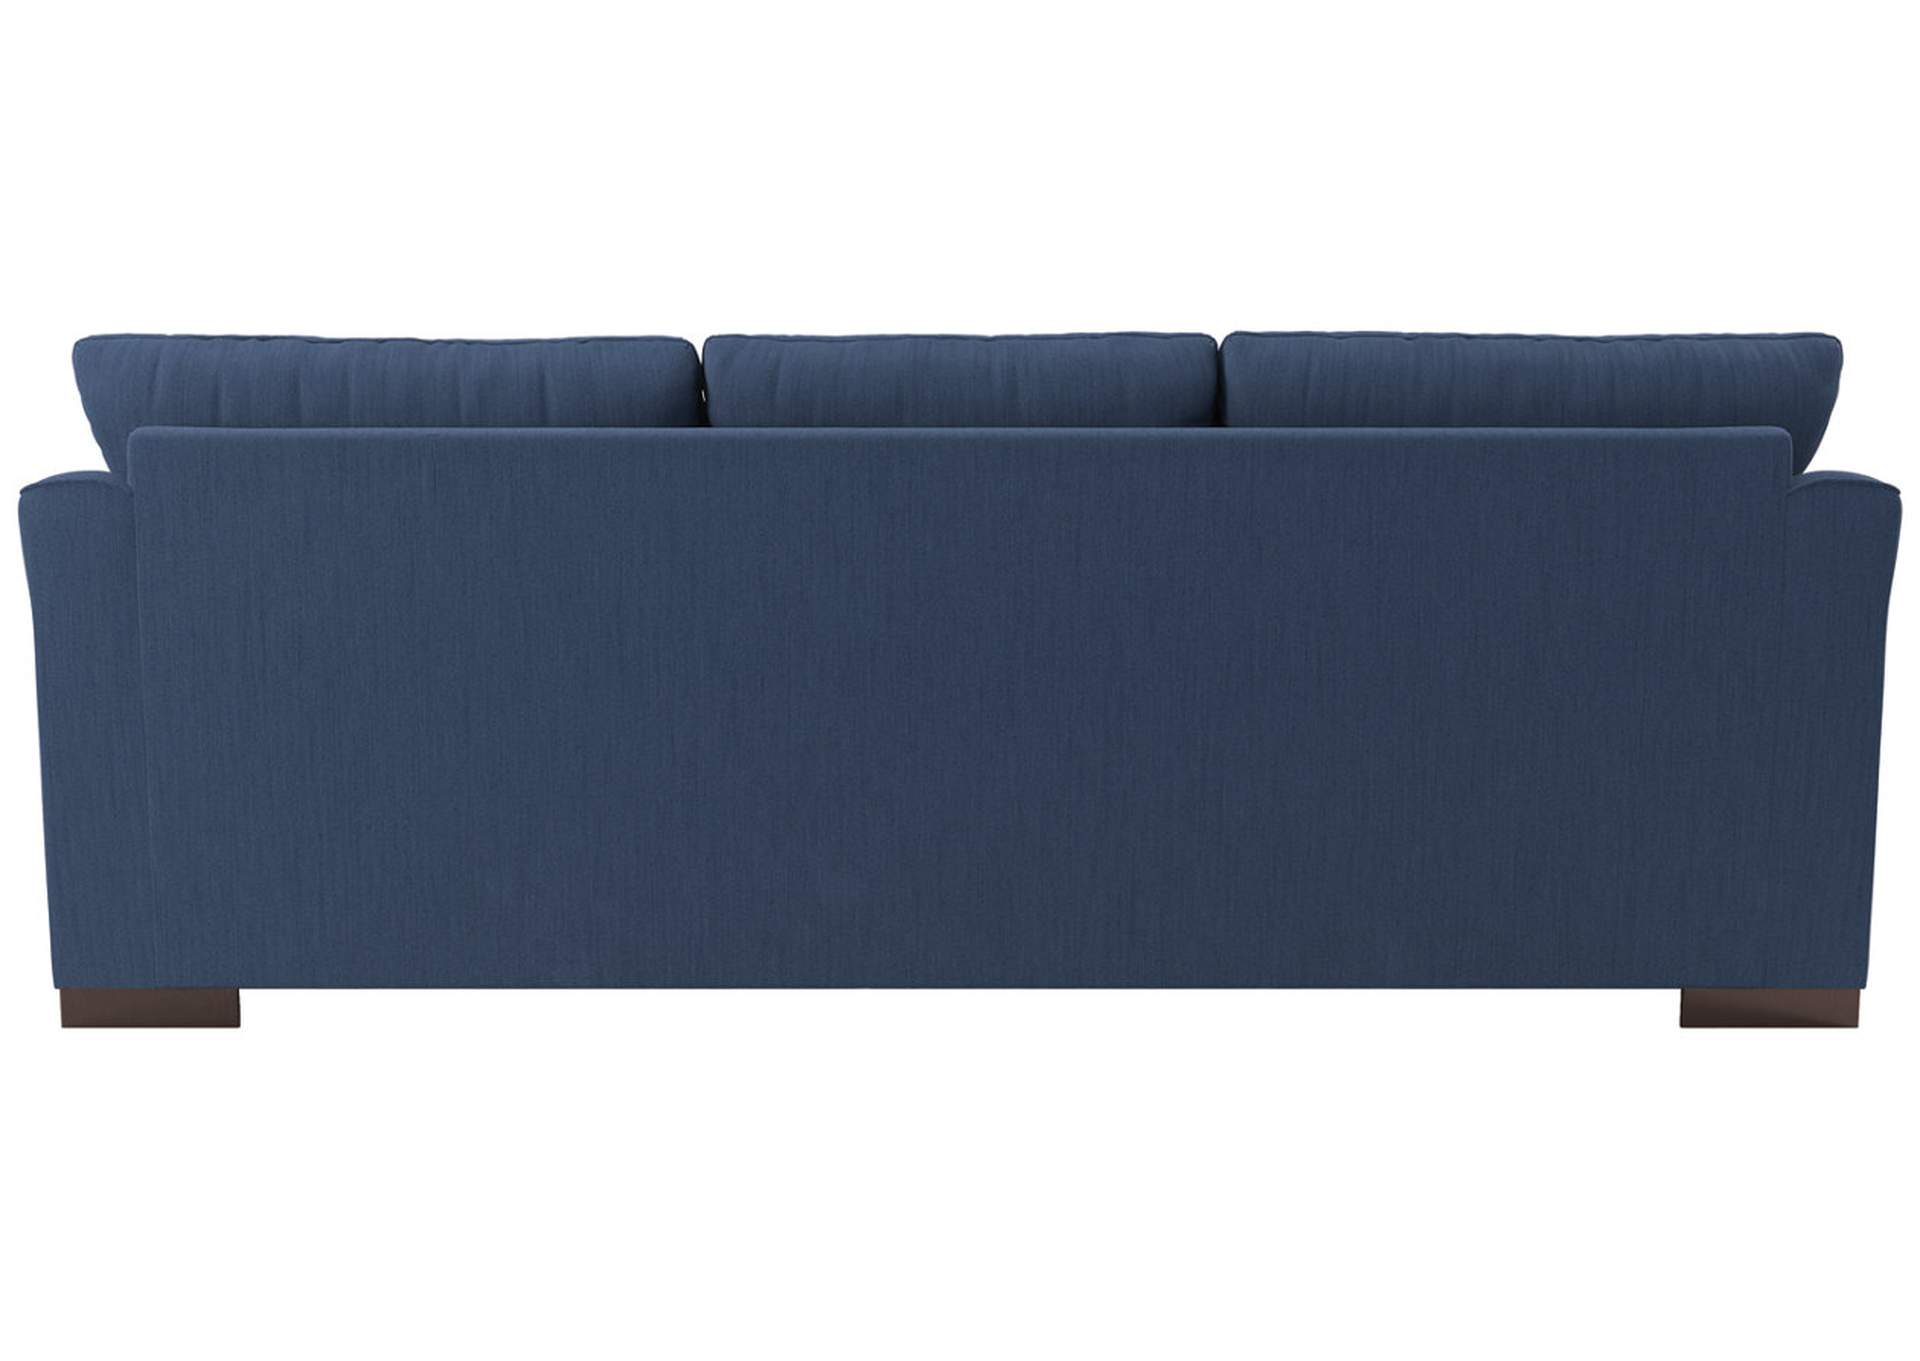 Bantry Nuvella Indigo Sofa,Ashley